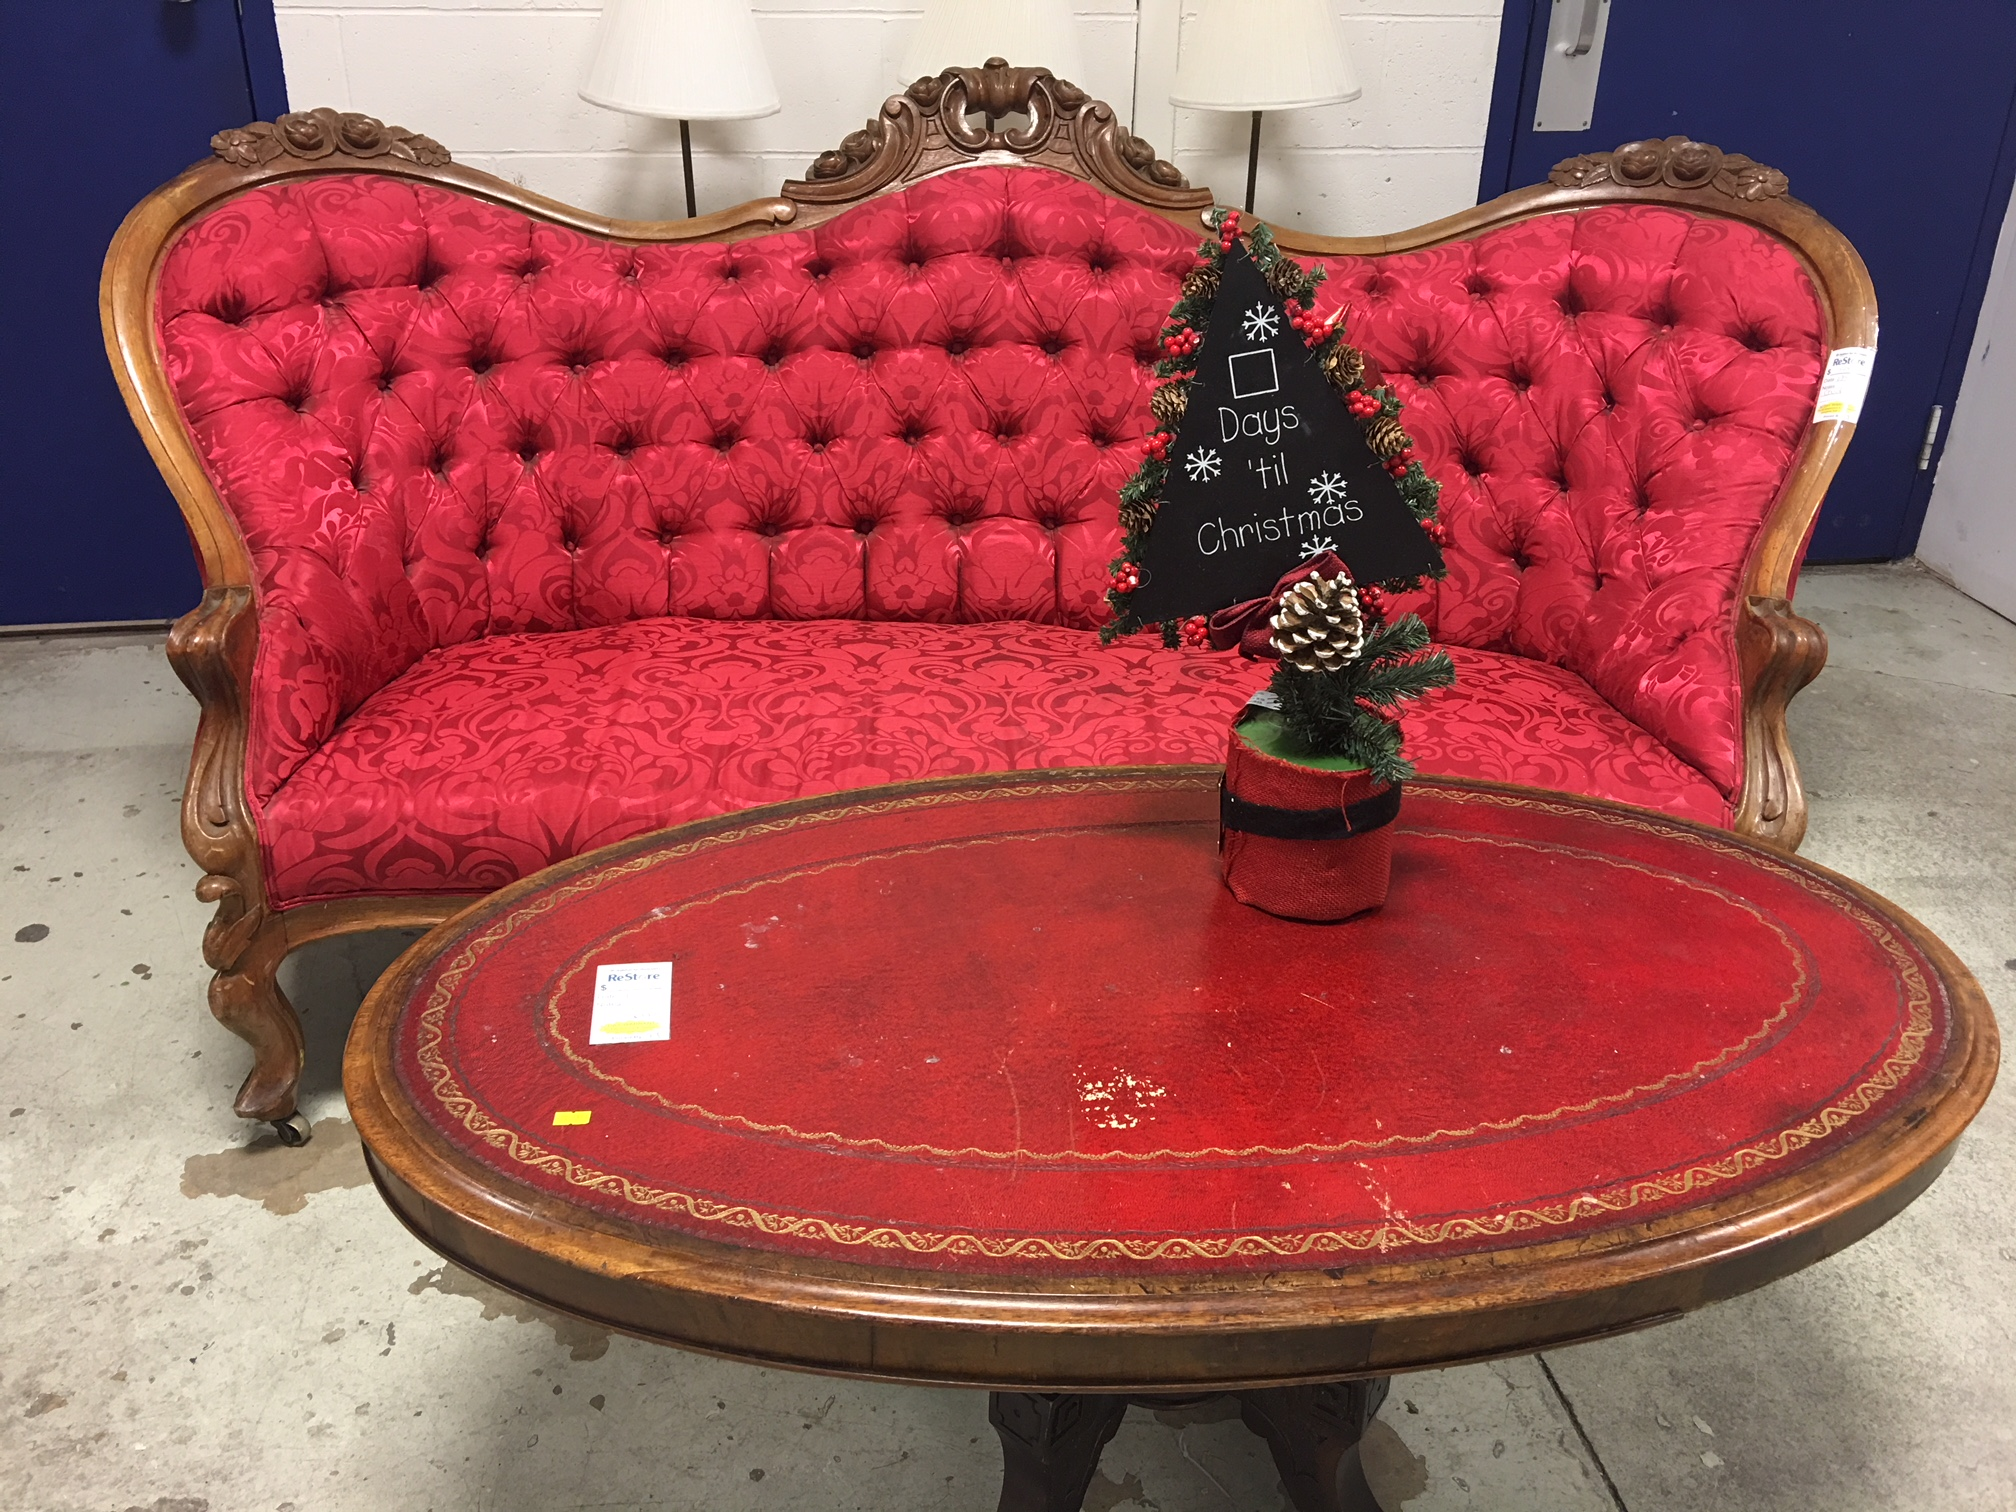 Whats-new-vintage-couch.JPG